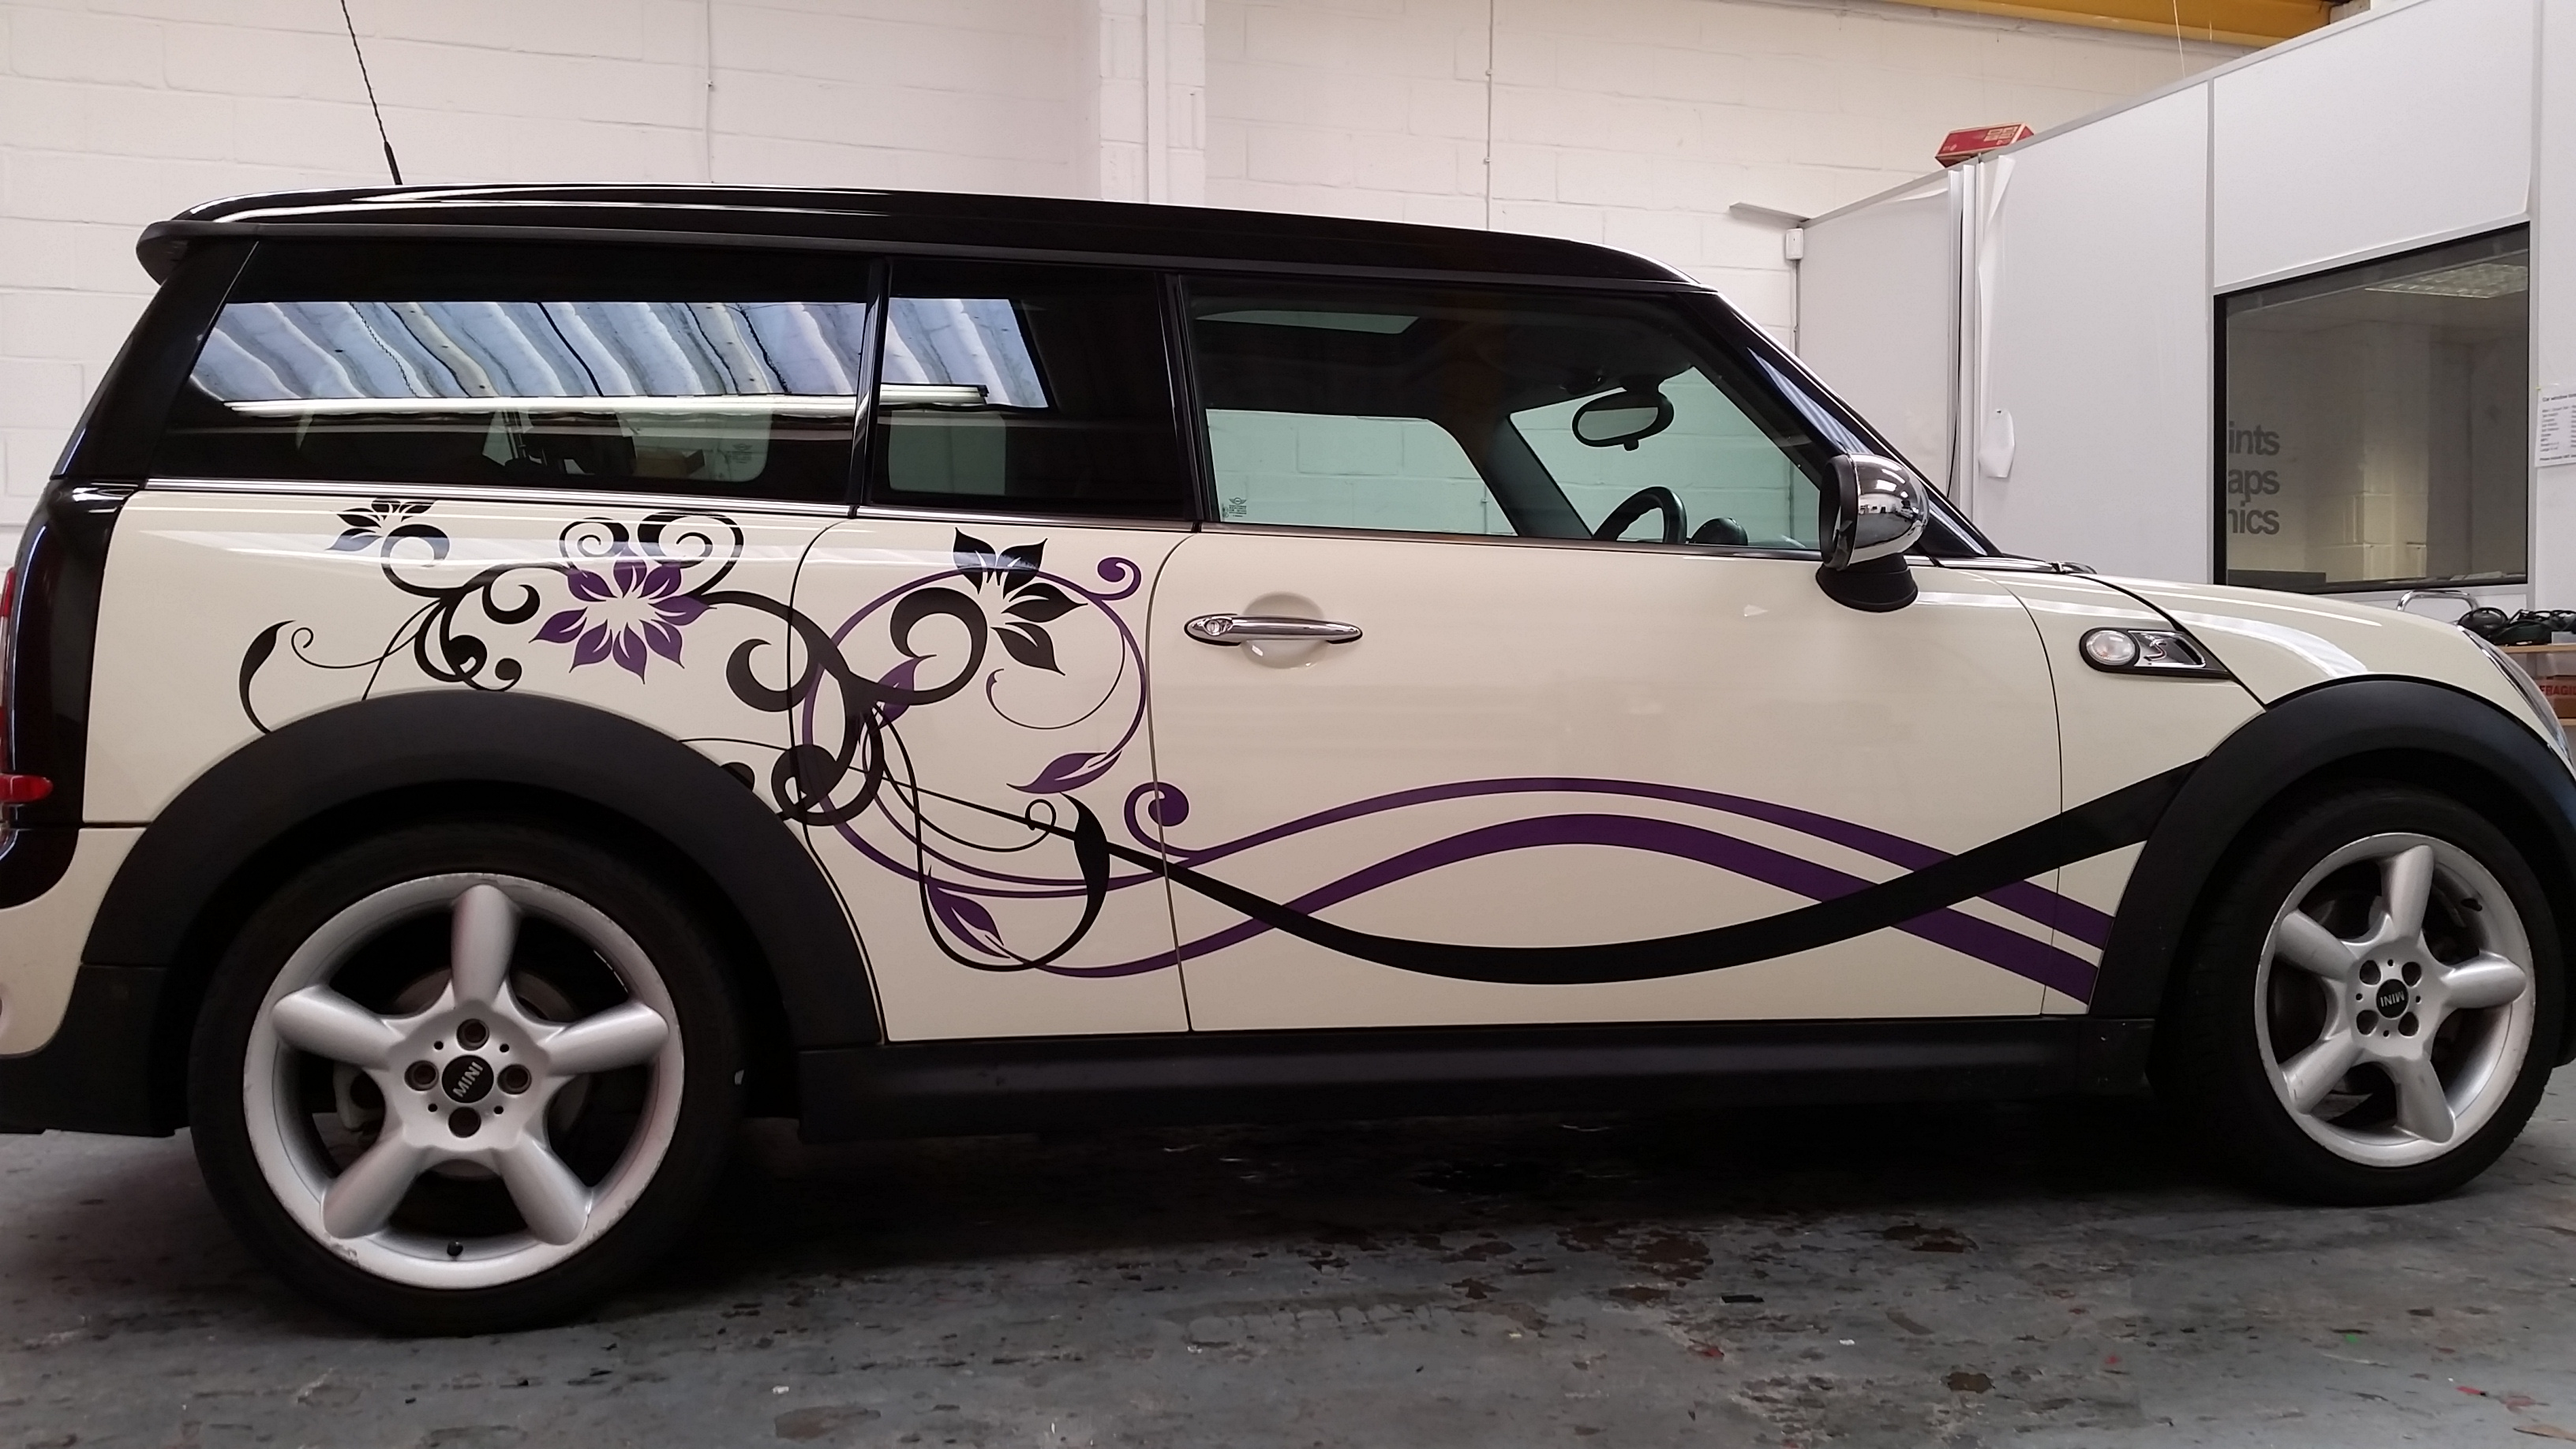 Cream mini with flower decal